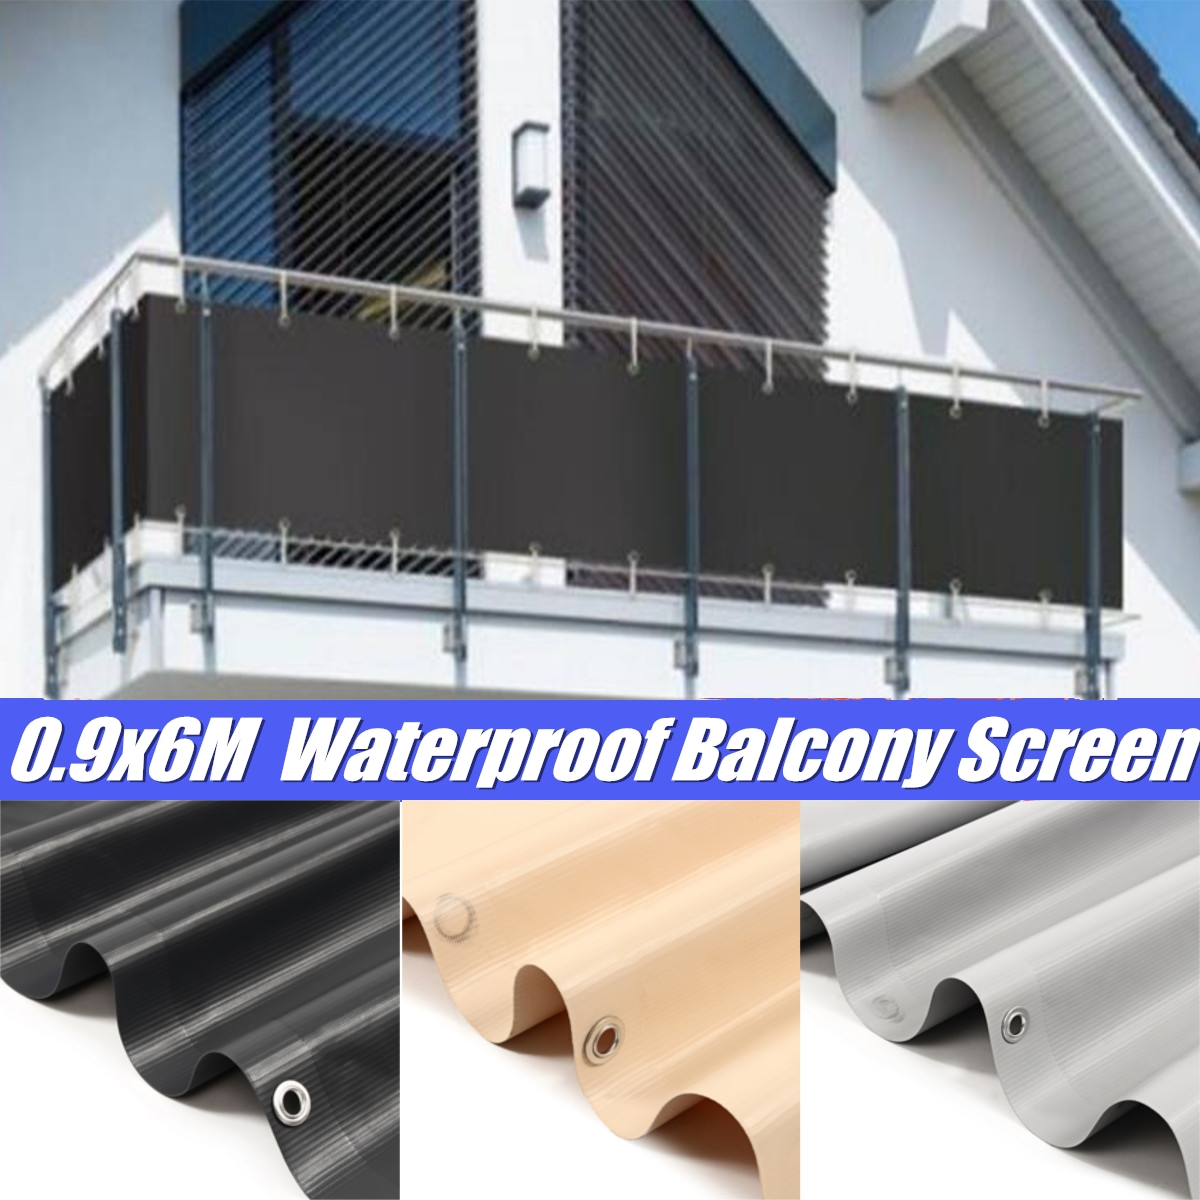 3 Colors PVC Balcony Private Screen 6X0.9m Sunshade Cloth Wind Protection Panel Waterproof Canopy Fence Garden Accessories